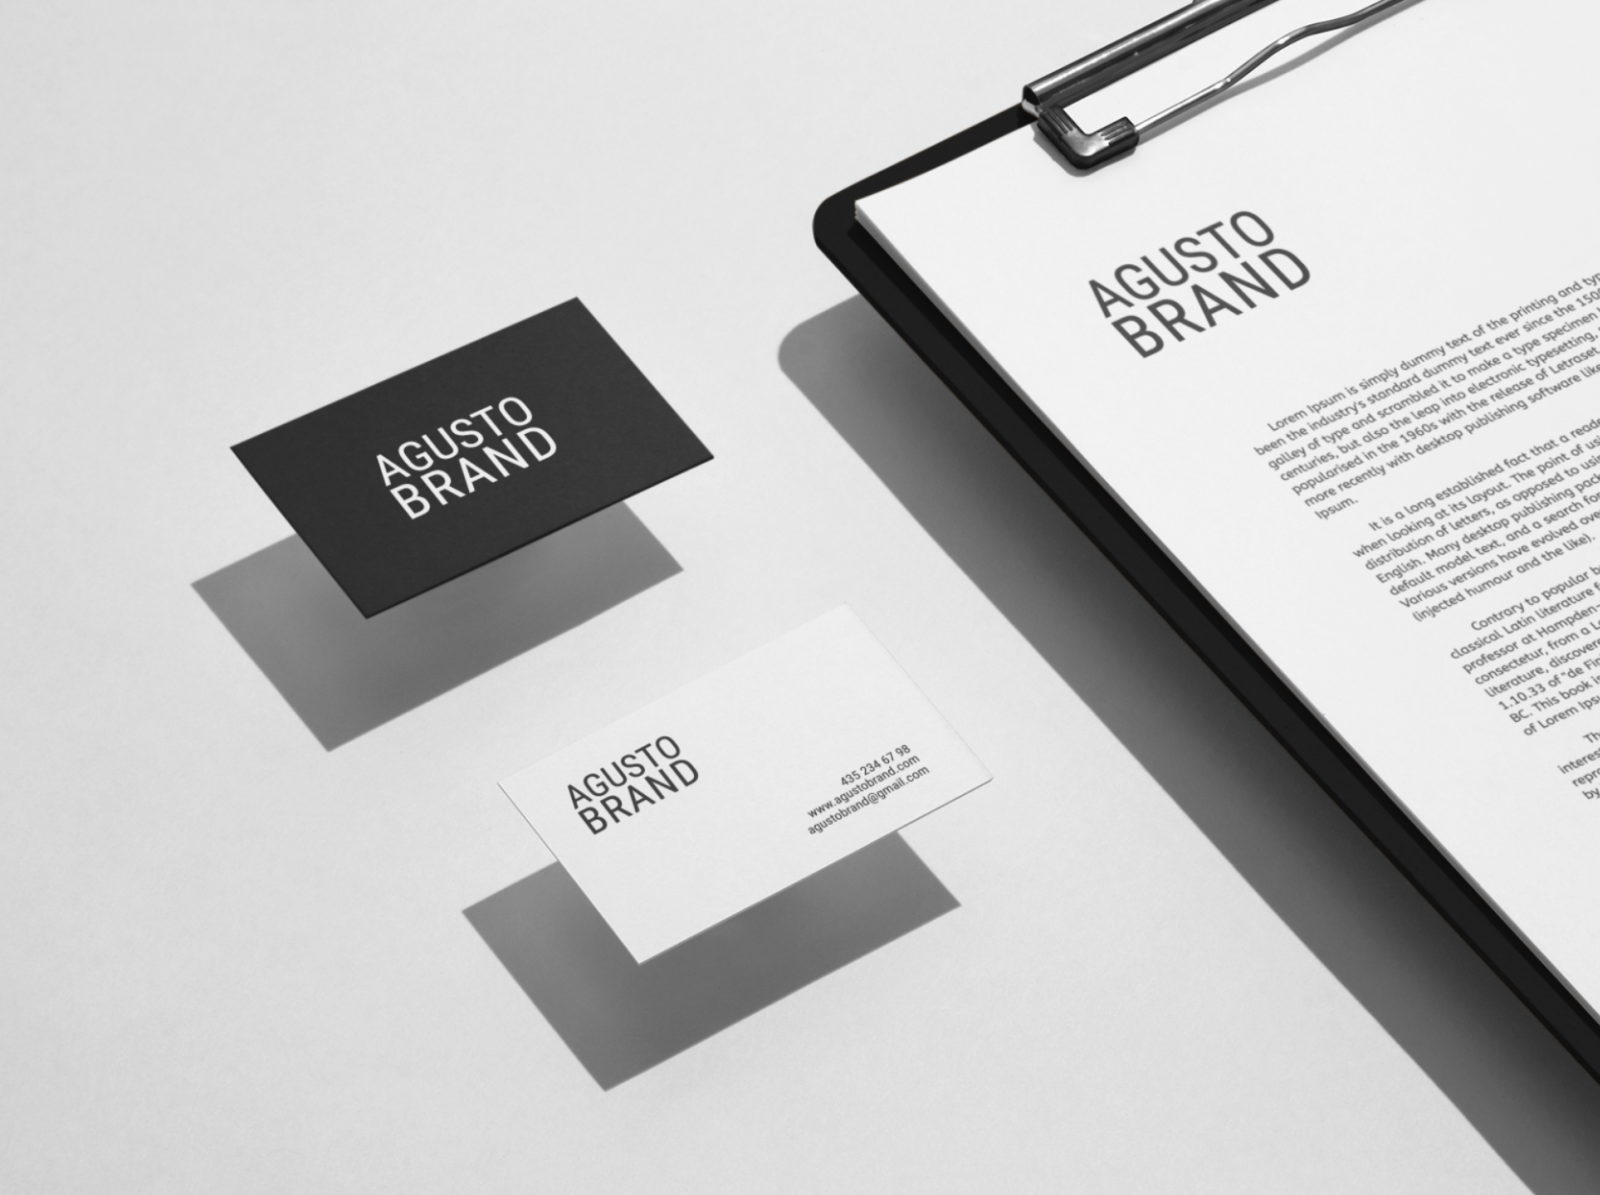 image regarding Free Stationery Templates identified as Absolutely free Stationery Mockup Templates by means of Artboard Studio upon Dribbble